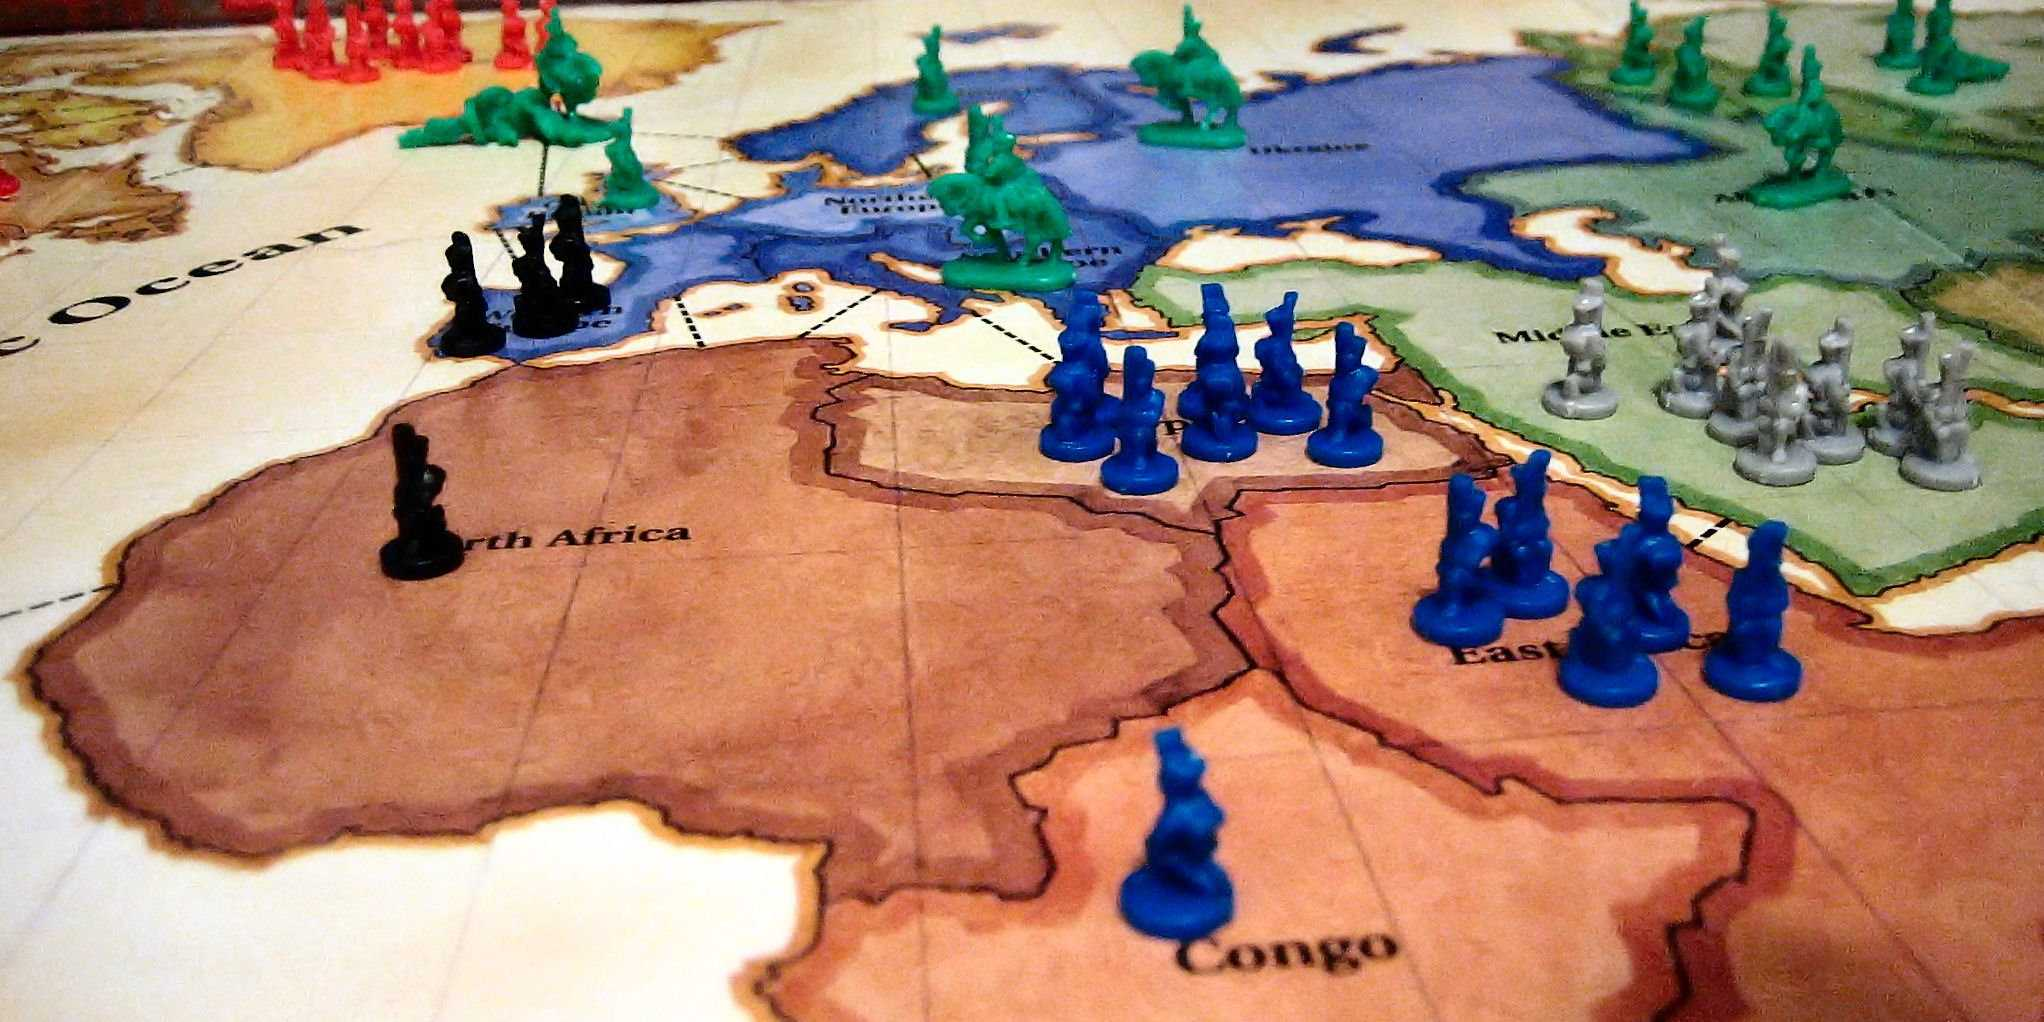 Risk board game with pieces showing Europe, Africa, and Asia